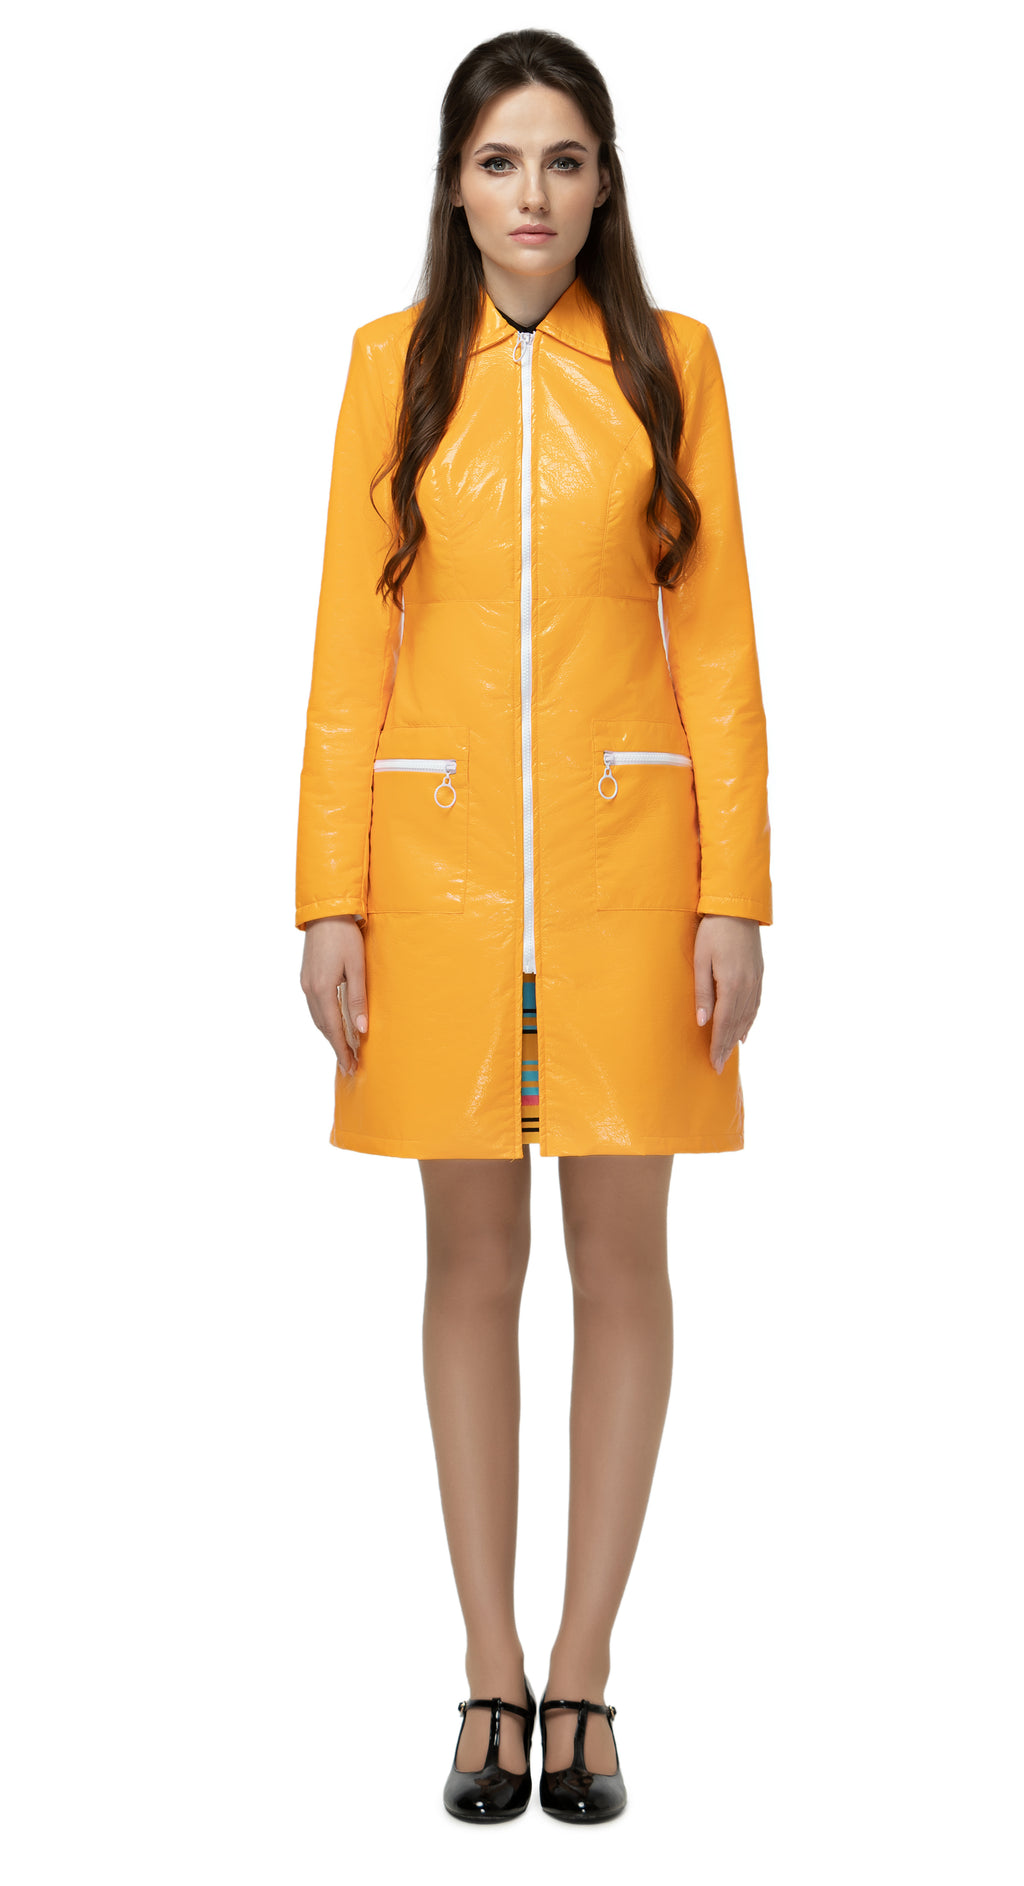 Fairweather, classic 60s water resistant raincoat. Immediately retro-styled front zipper closure and matching pocket closures. Classic medium sized collar.  Also available in black/white.